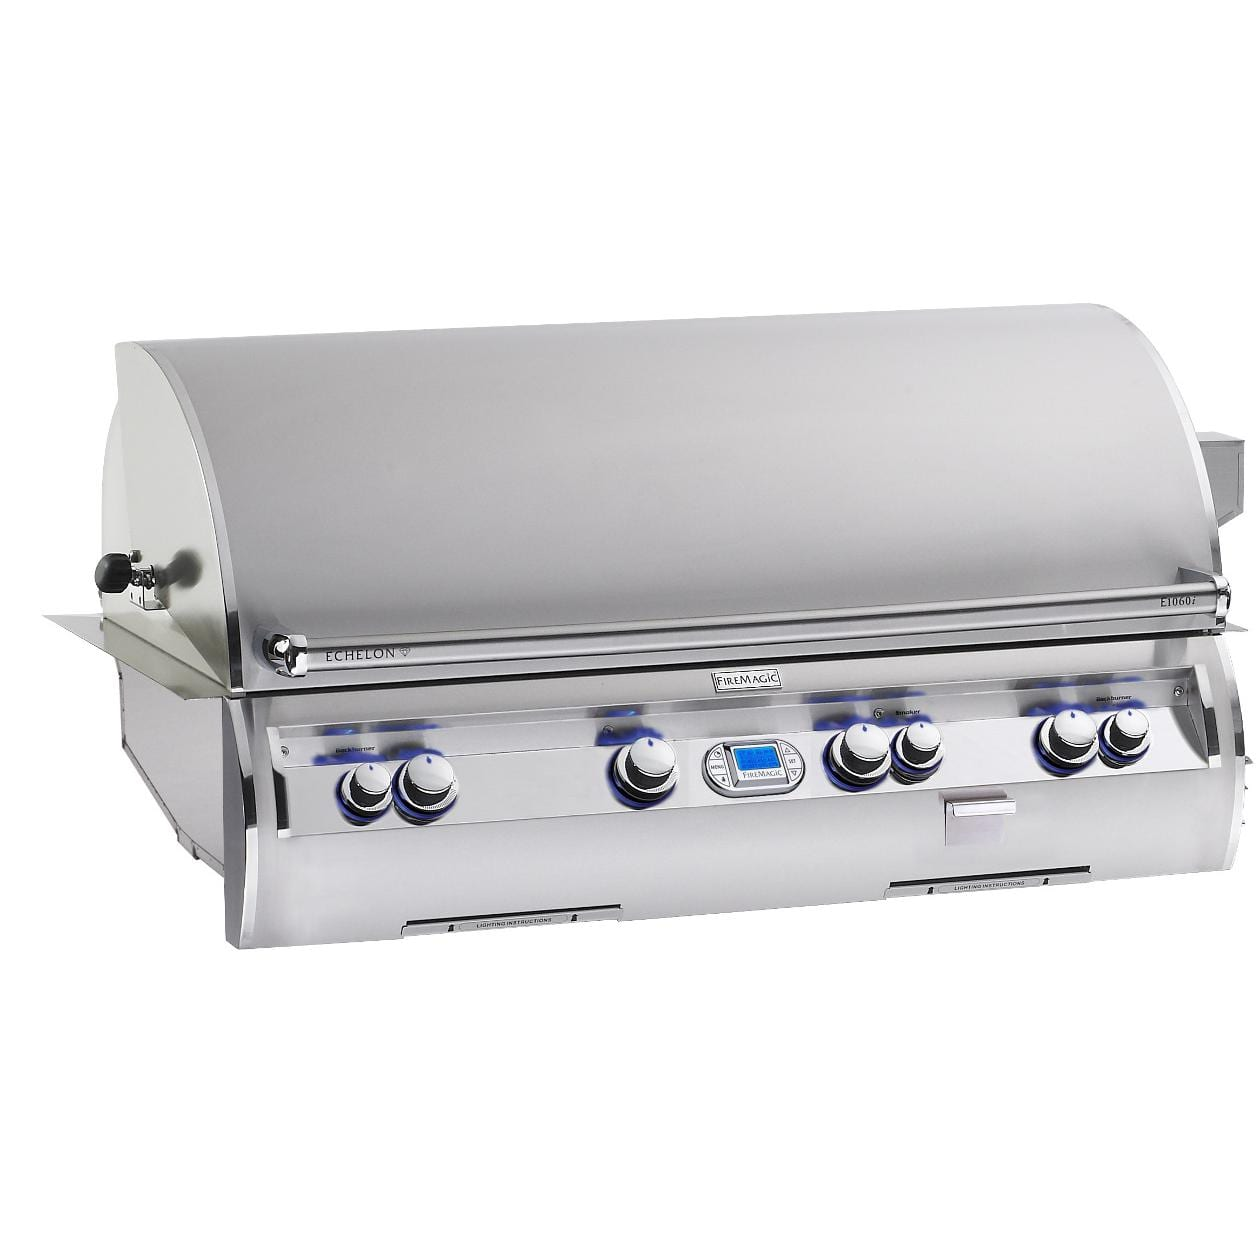 Fire Magic Echelon Diamond E1060i Natural Gas Grill